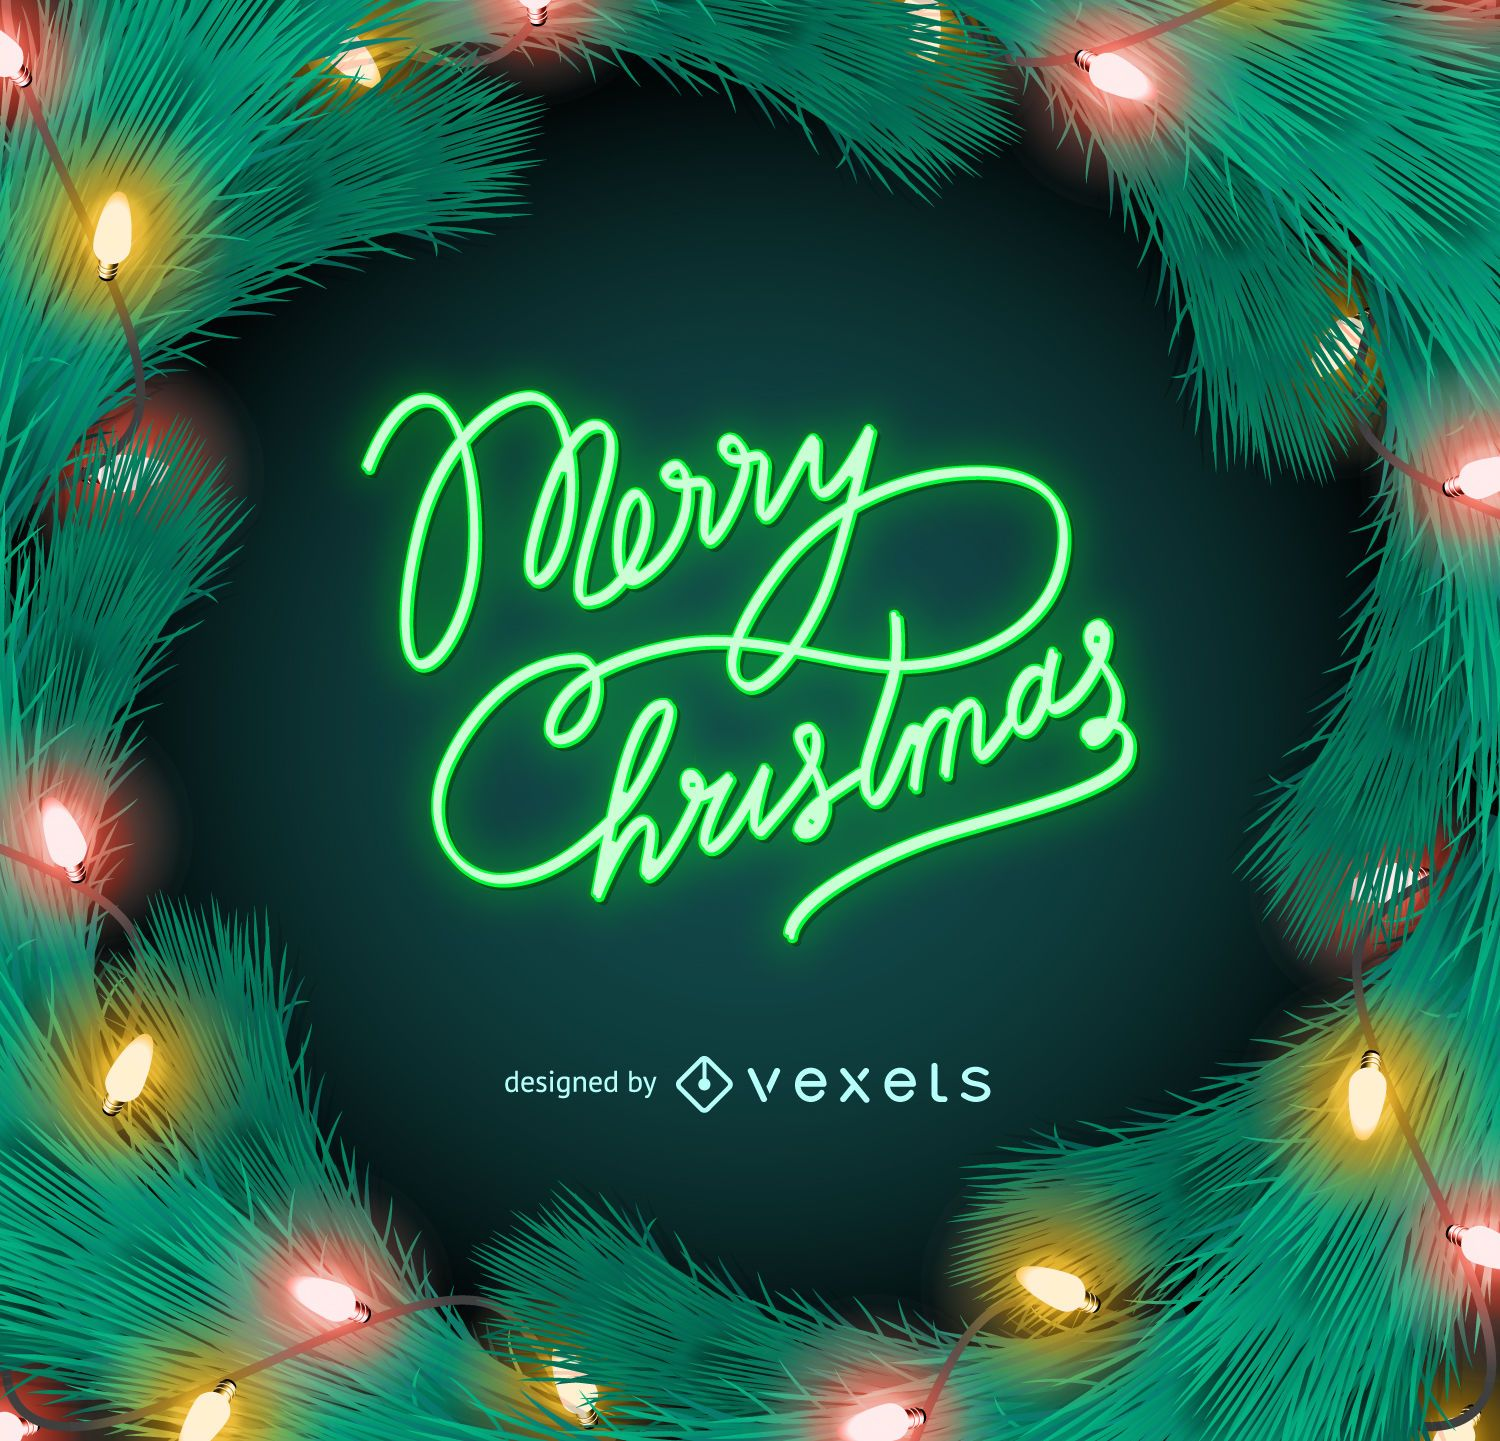 merry christmas neon lights sign download large image 1554x1493px license image user